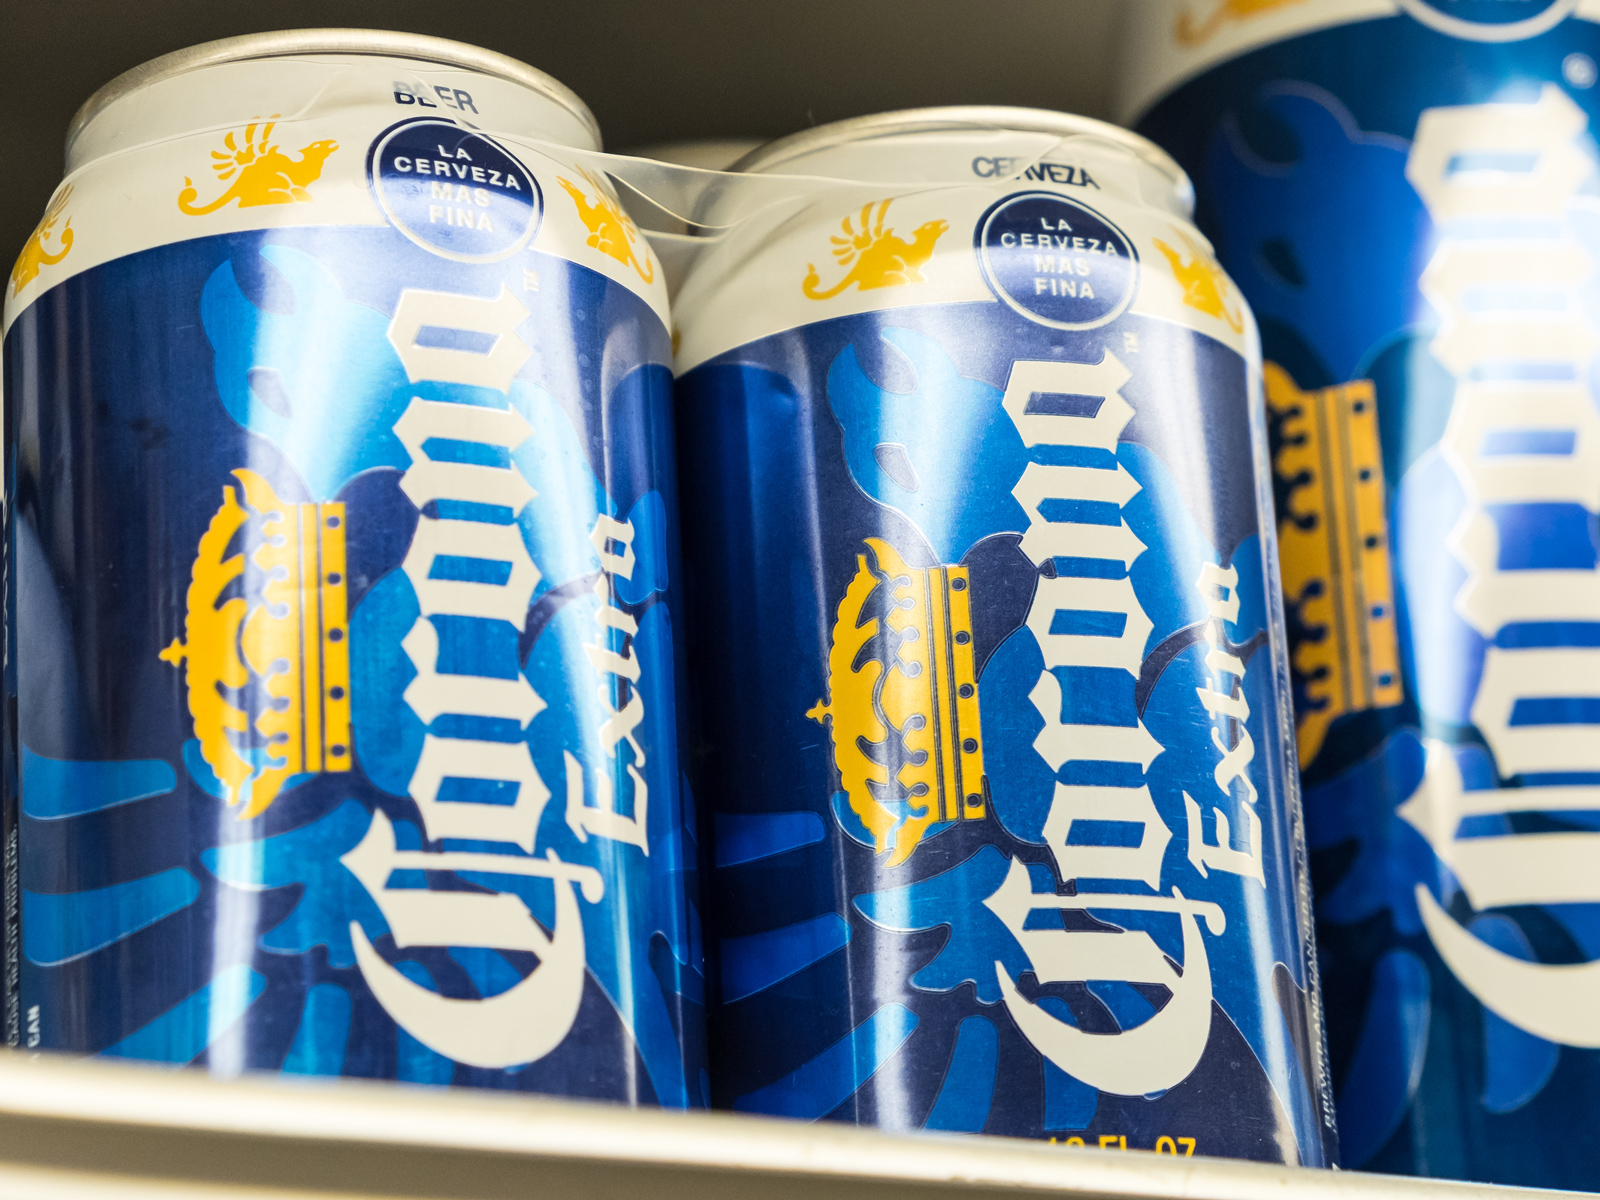 corona-cans-FT-BLOG0619.jpg